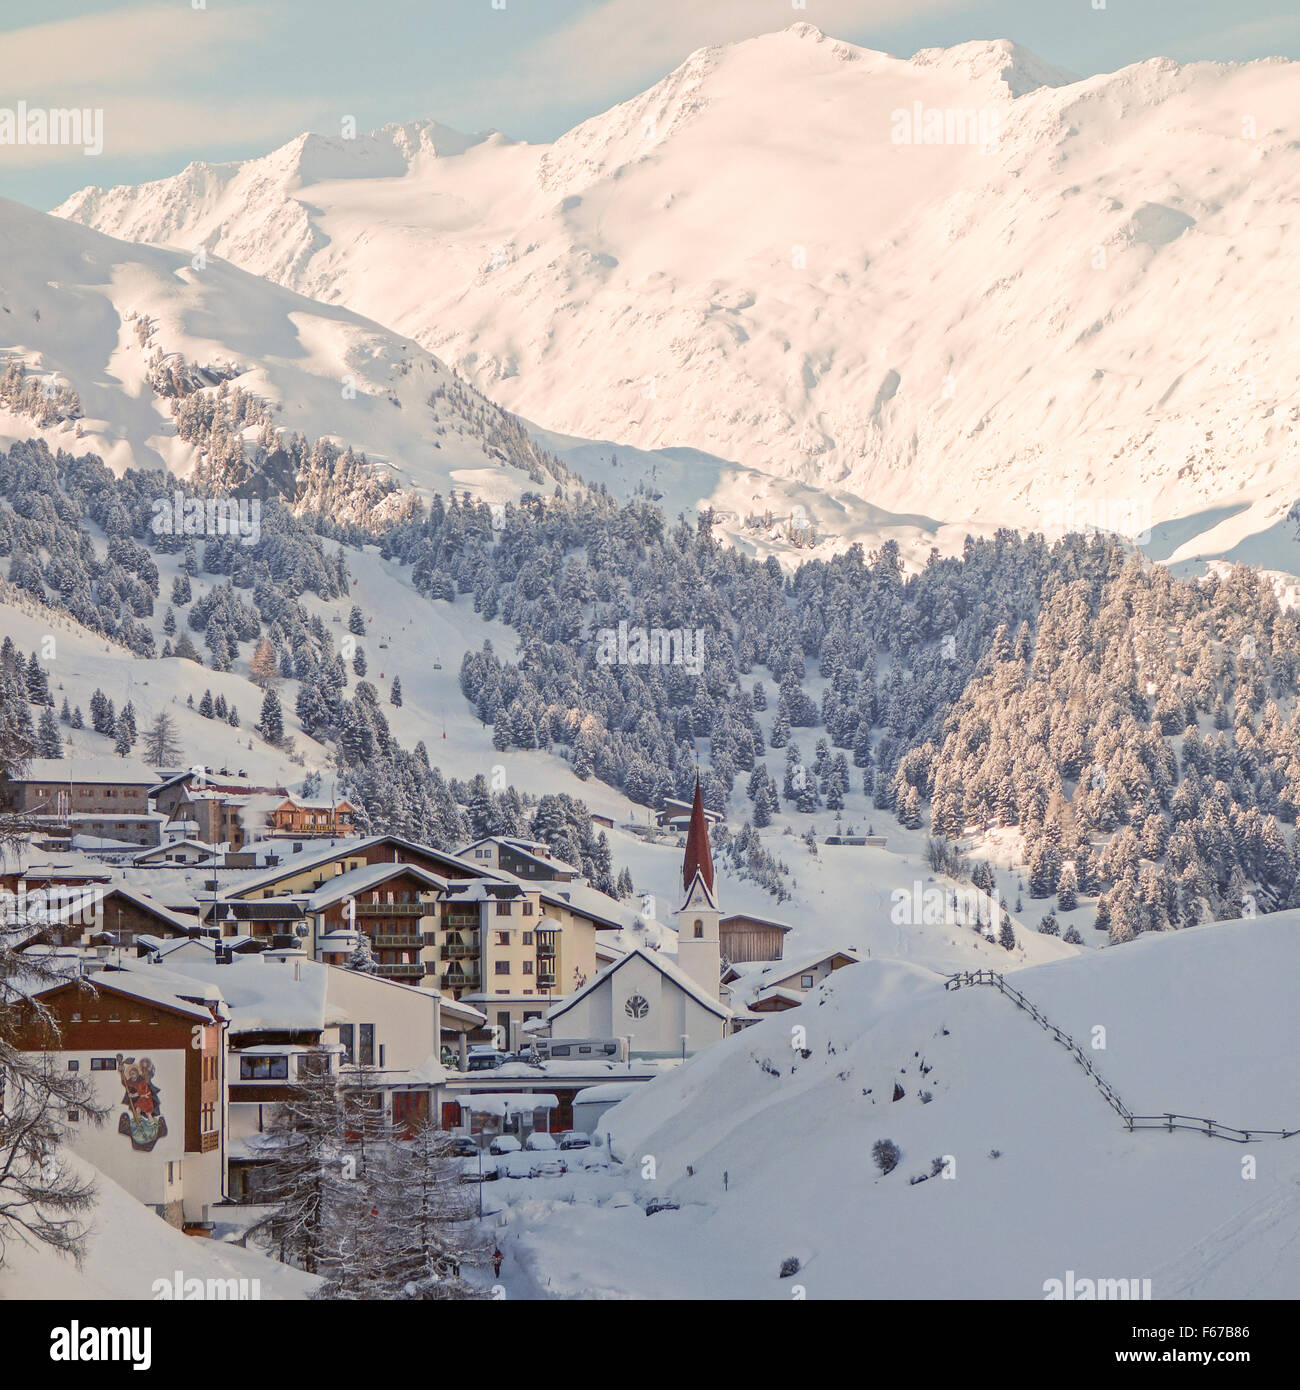 The village and ski resort of Obergurgl - at 1,930m it is one of the highest ski villages in Europe - Stock Image